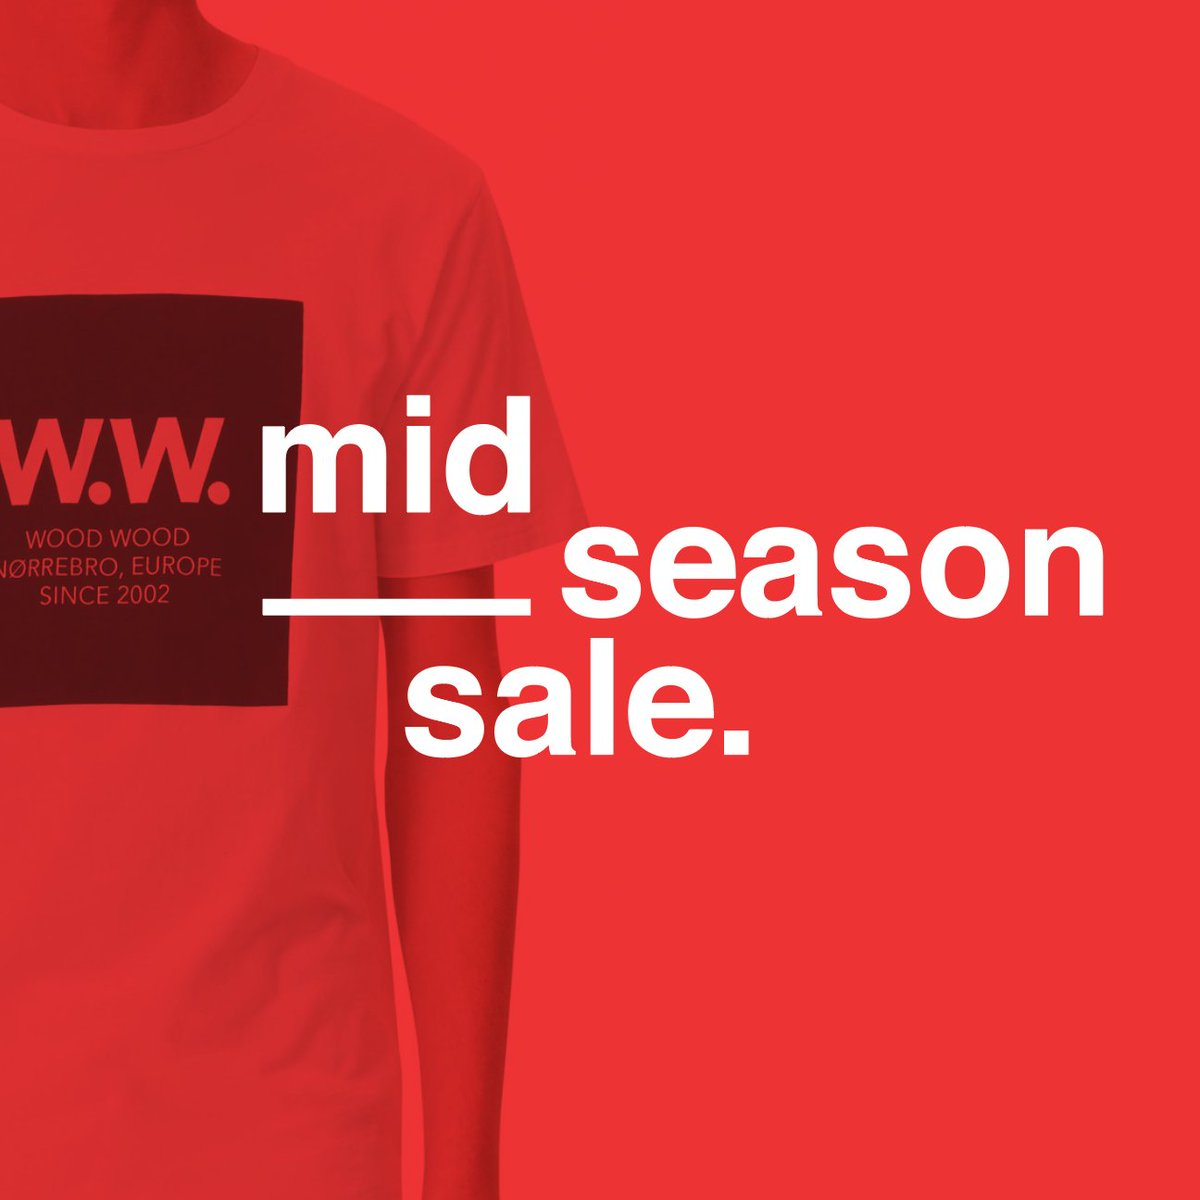 Woodhouse Clothing On Twitter We Have Launched Our Mid Season Sale